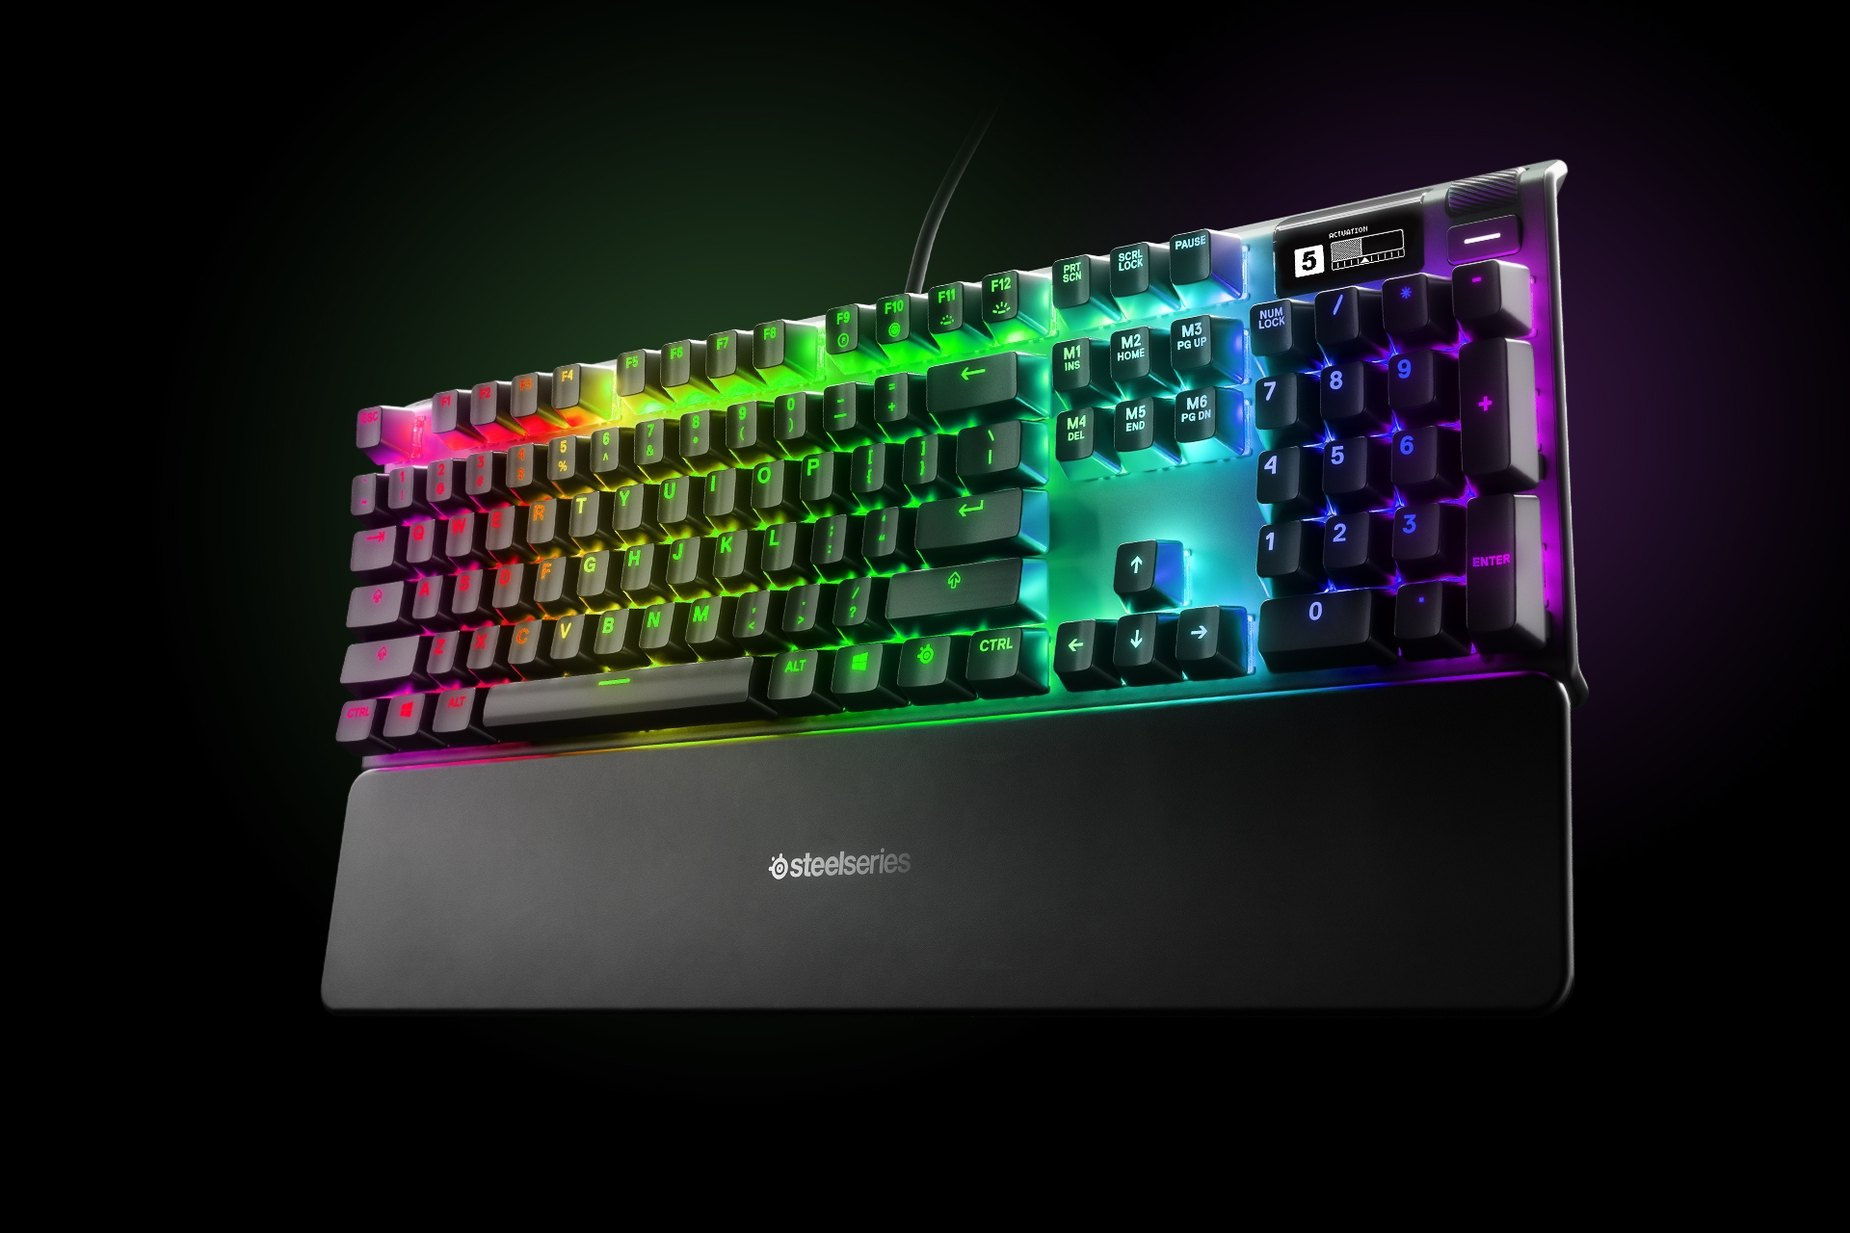 Tayca - Apex Pro gaming keyboard with the illumination lit up on dark background, also shows the OLED screen and controls used to change settings, switch actuation, and adjust audio